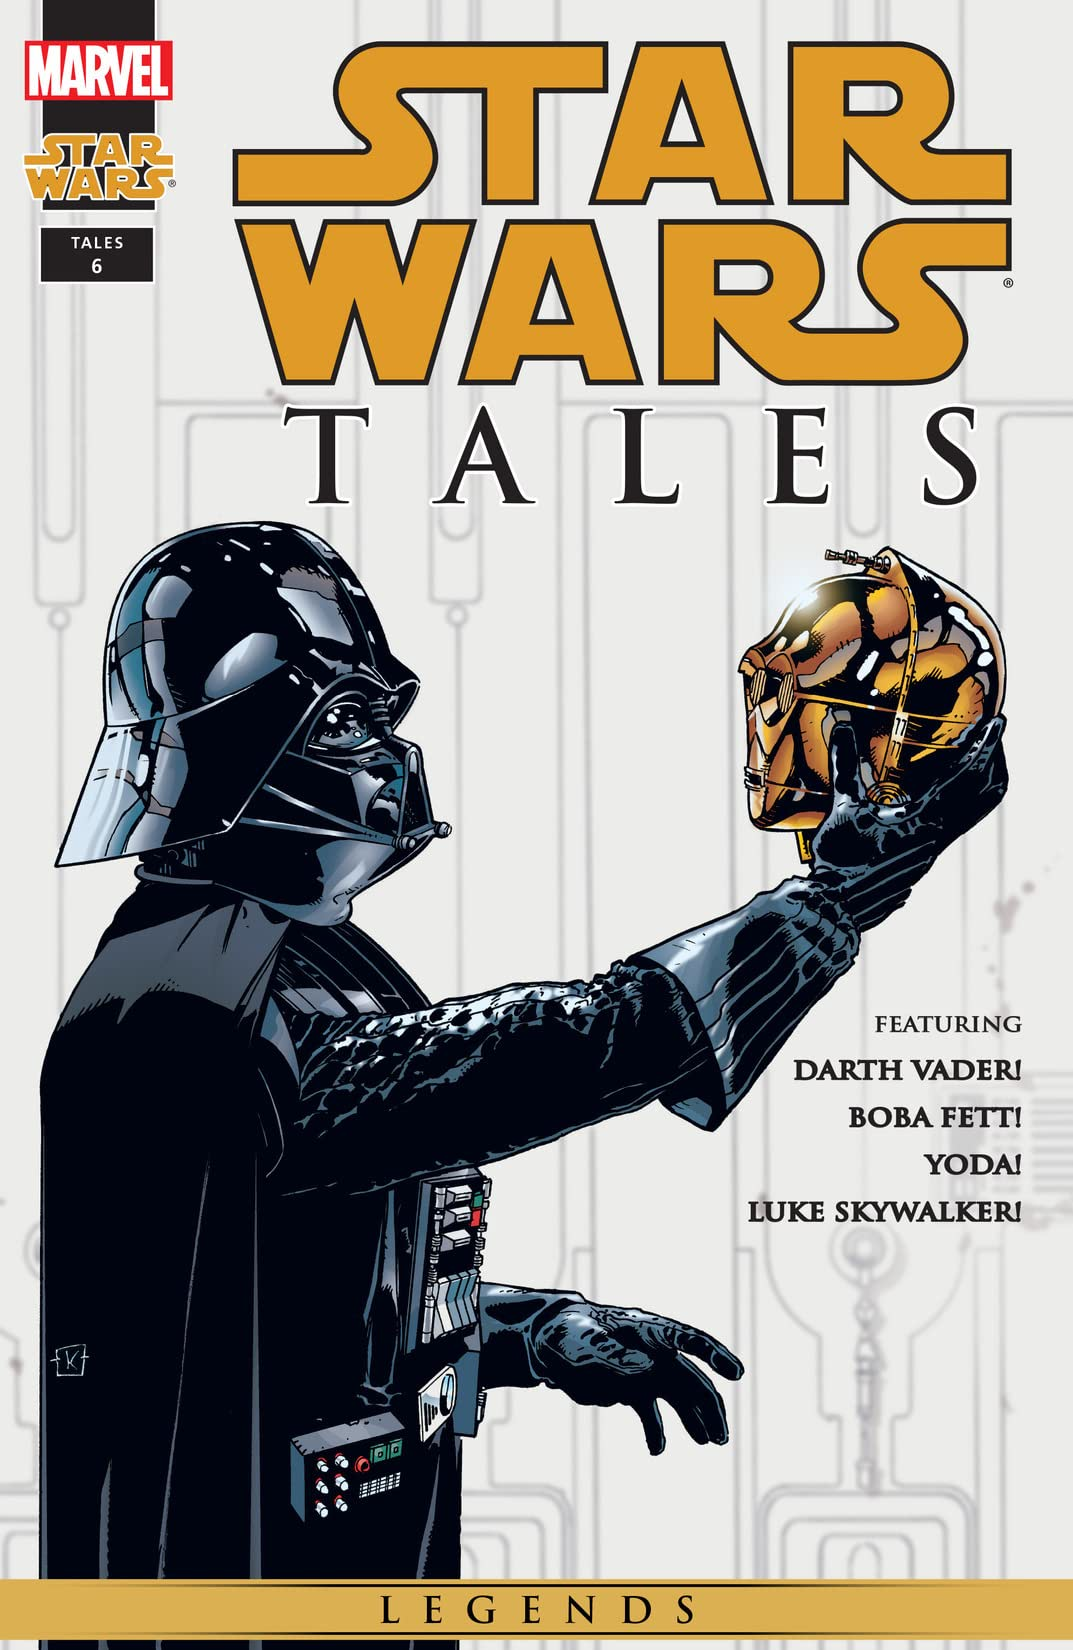 Star Wars Tales (1999-2005) #6